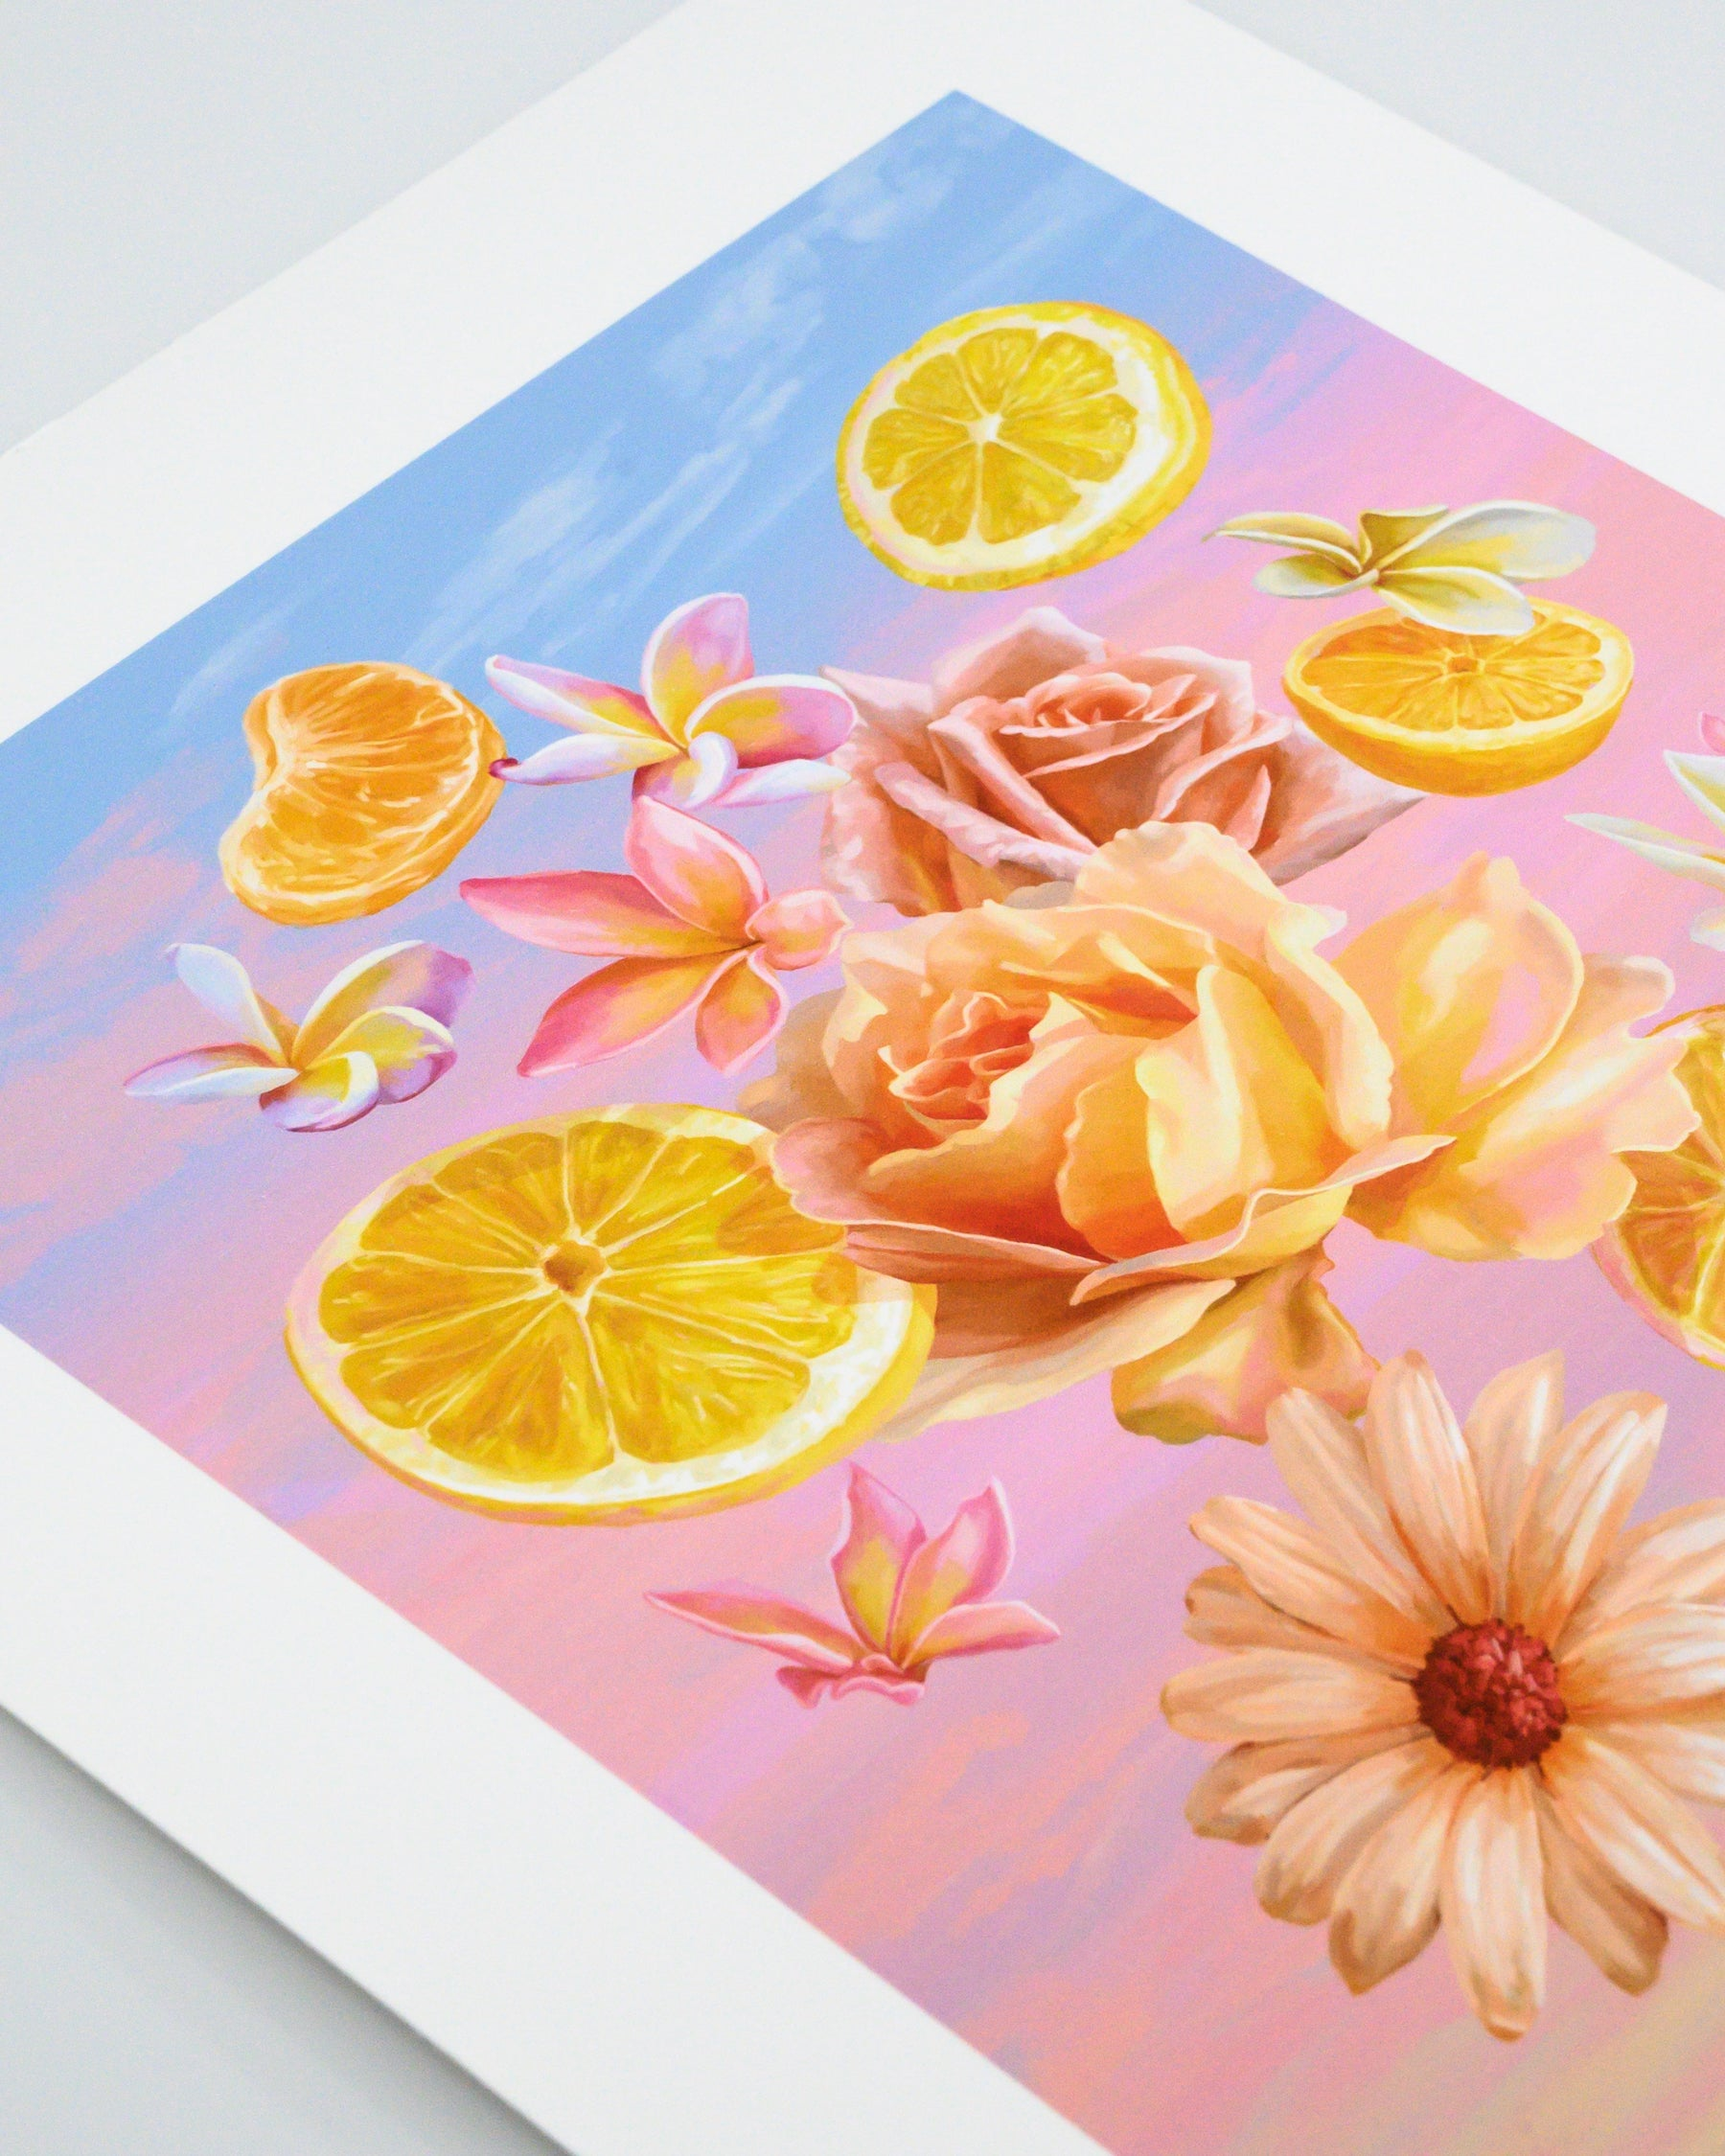 Kit Keenan Collects Fruit & Flowers for Her Kitchen Image